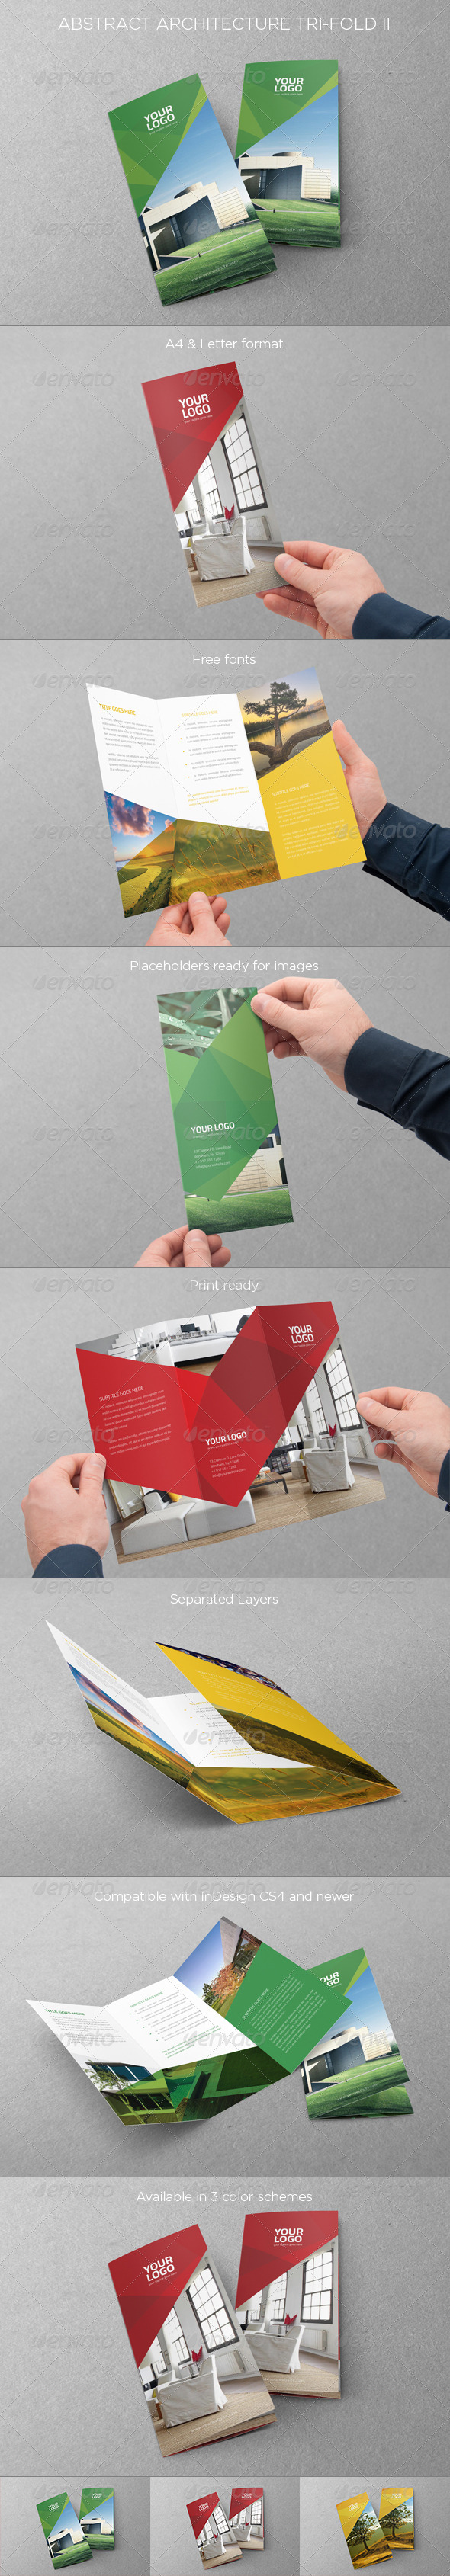 GraphicRiver Abstract Architecture Trifold II 7465395